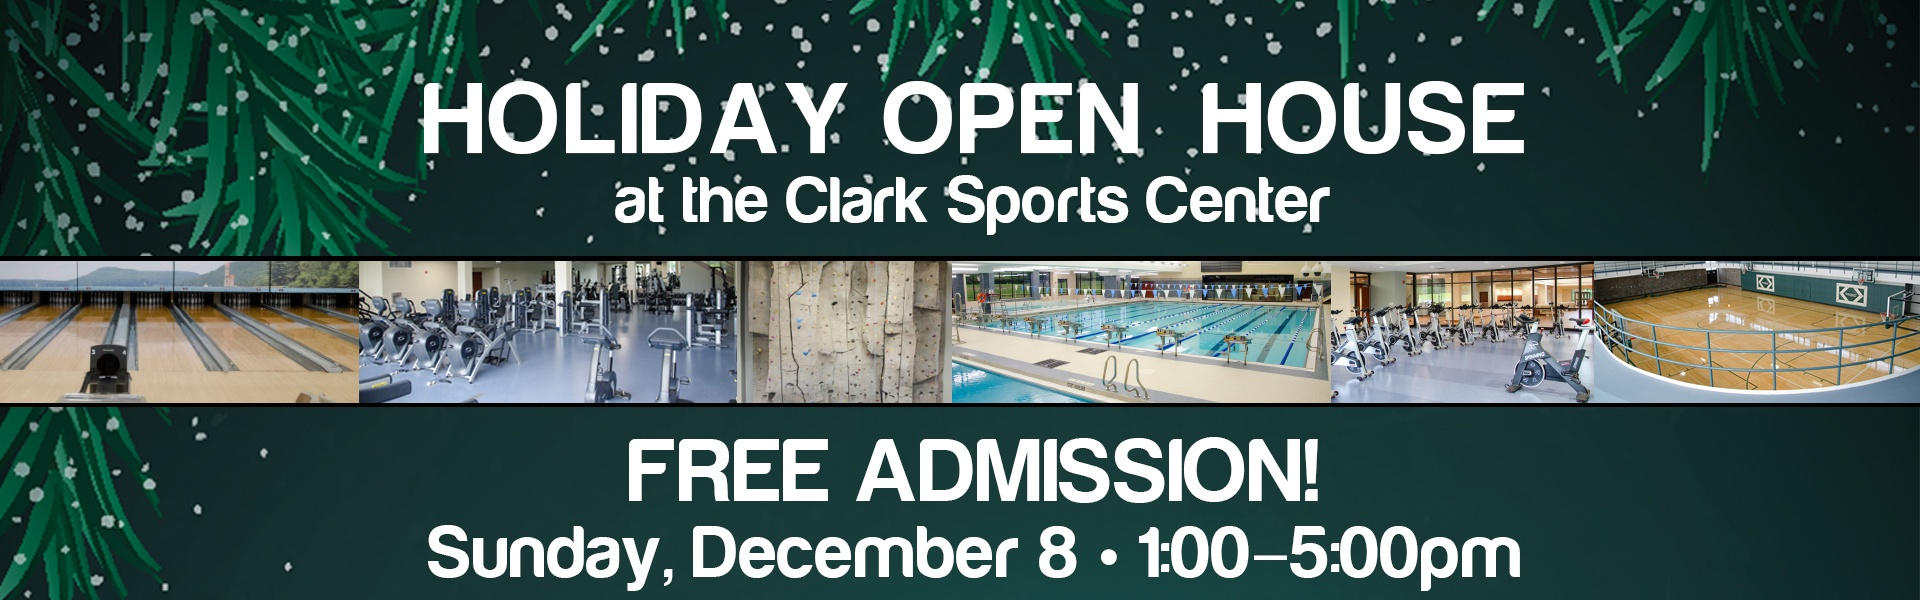 Holiday Open House at the Clark Sports Center